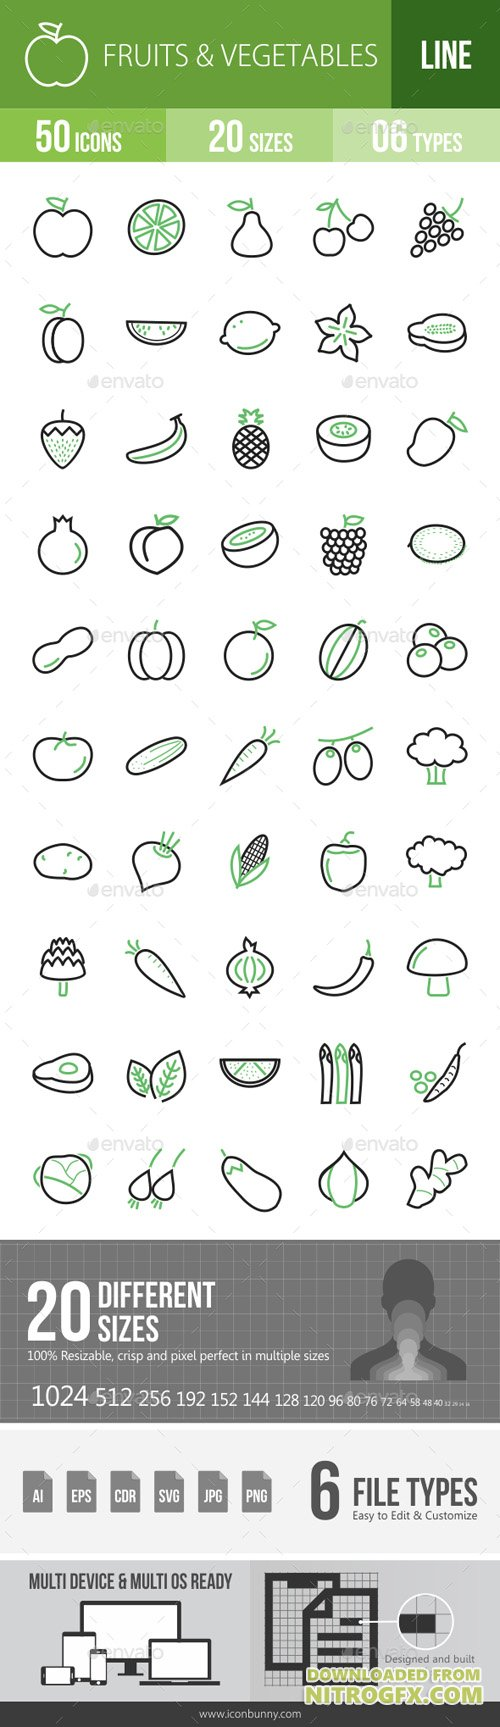 Fruits & Vegetables Line Green & Black Icons 15562872